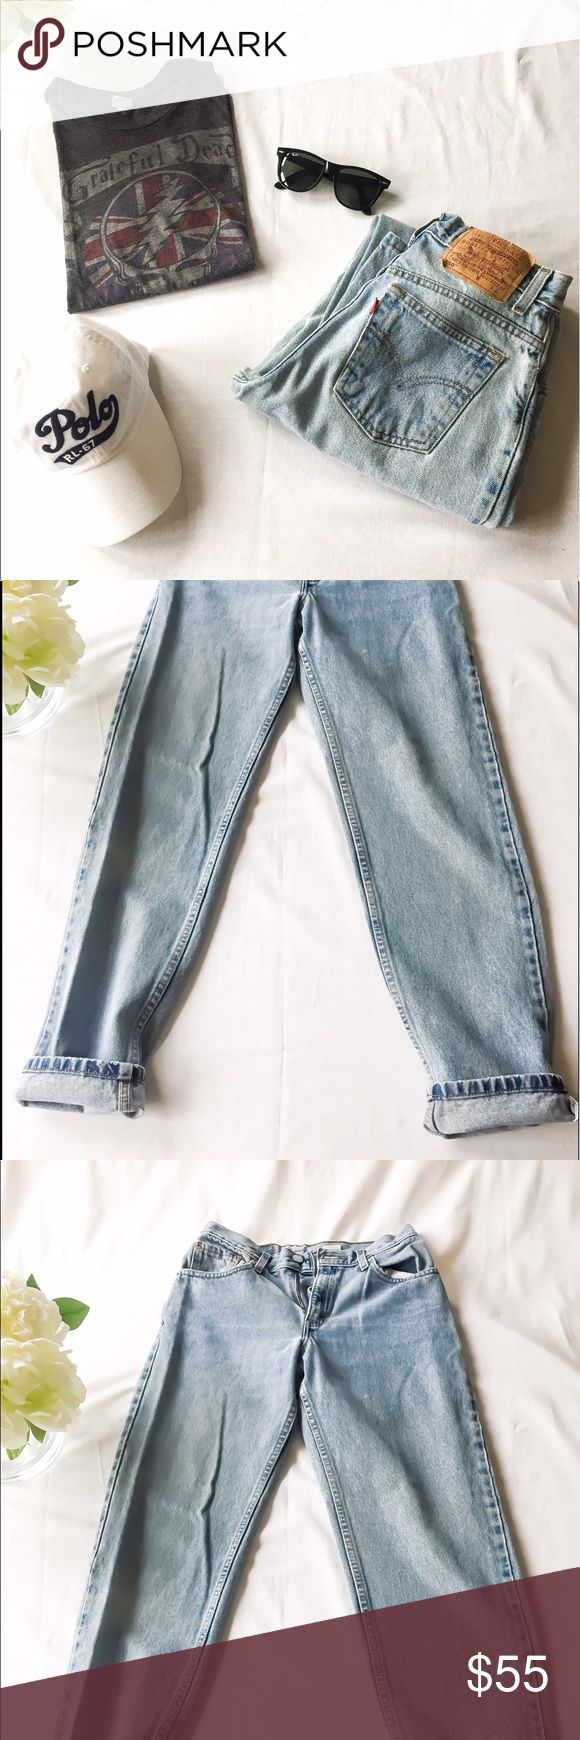 90s Vintage 550 Tapered Leg Light washed Jeans! 90s Vintage 550 Tapered Leg Light washed Jeans!  Rare Jean Find! 100% cotton Jean. Made in the 90s. Look super chic with a tee shirt and jean vintage look! Size 7 Juniors large. If you don't like the leg,  denim shorts high waisted is always an idea! Levi's Pants Straight Leg